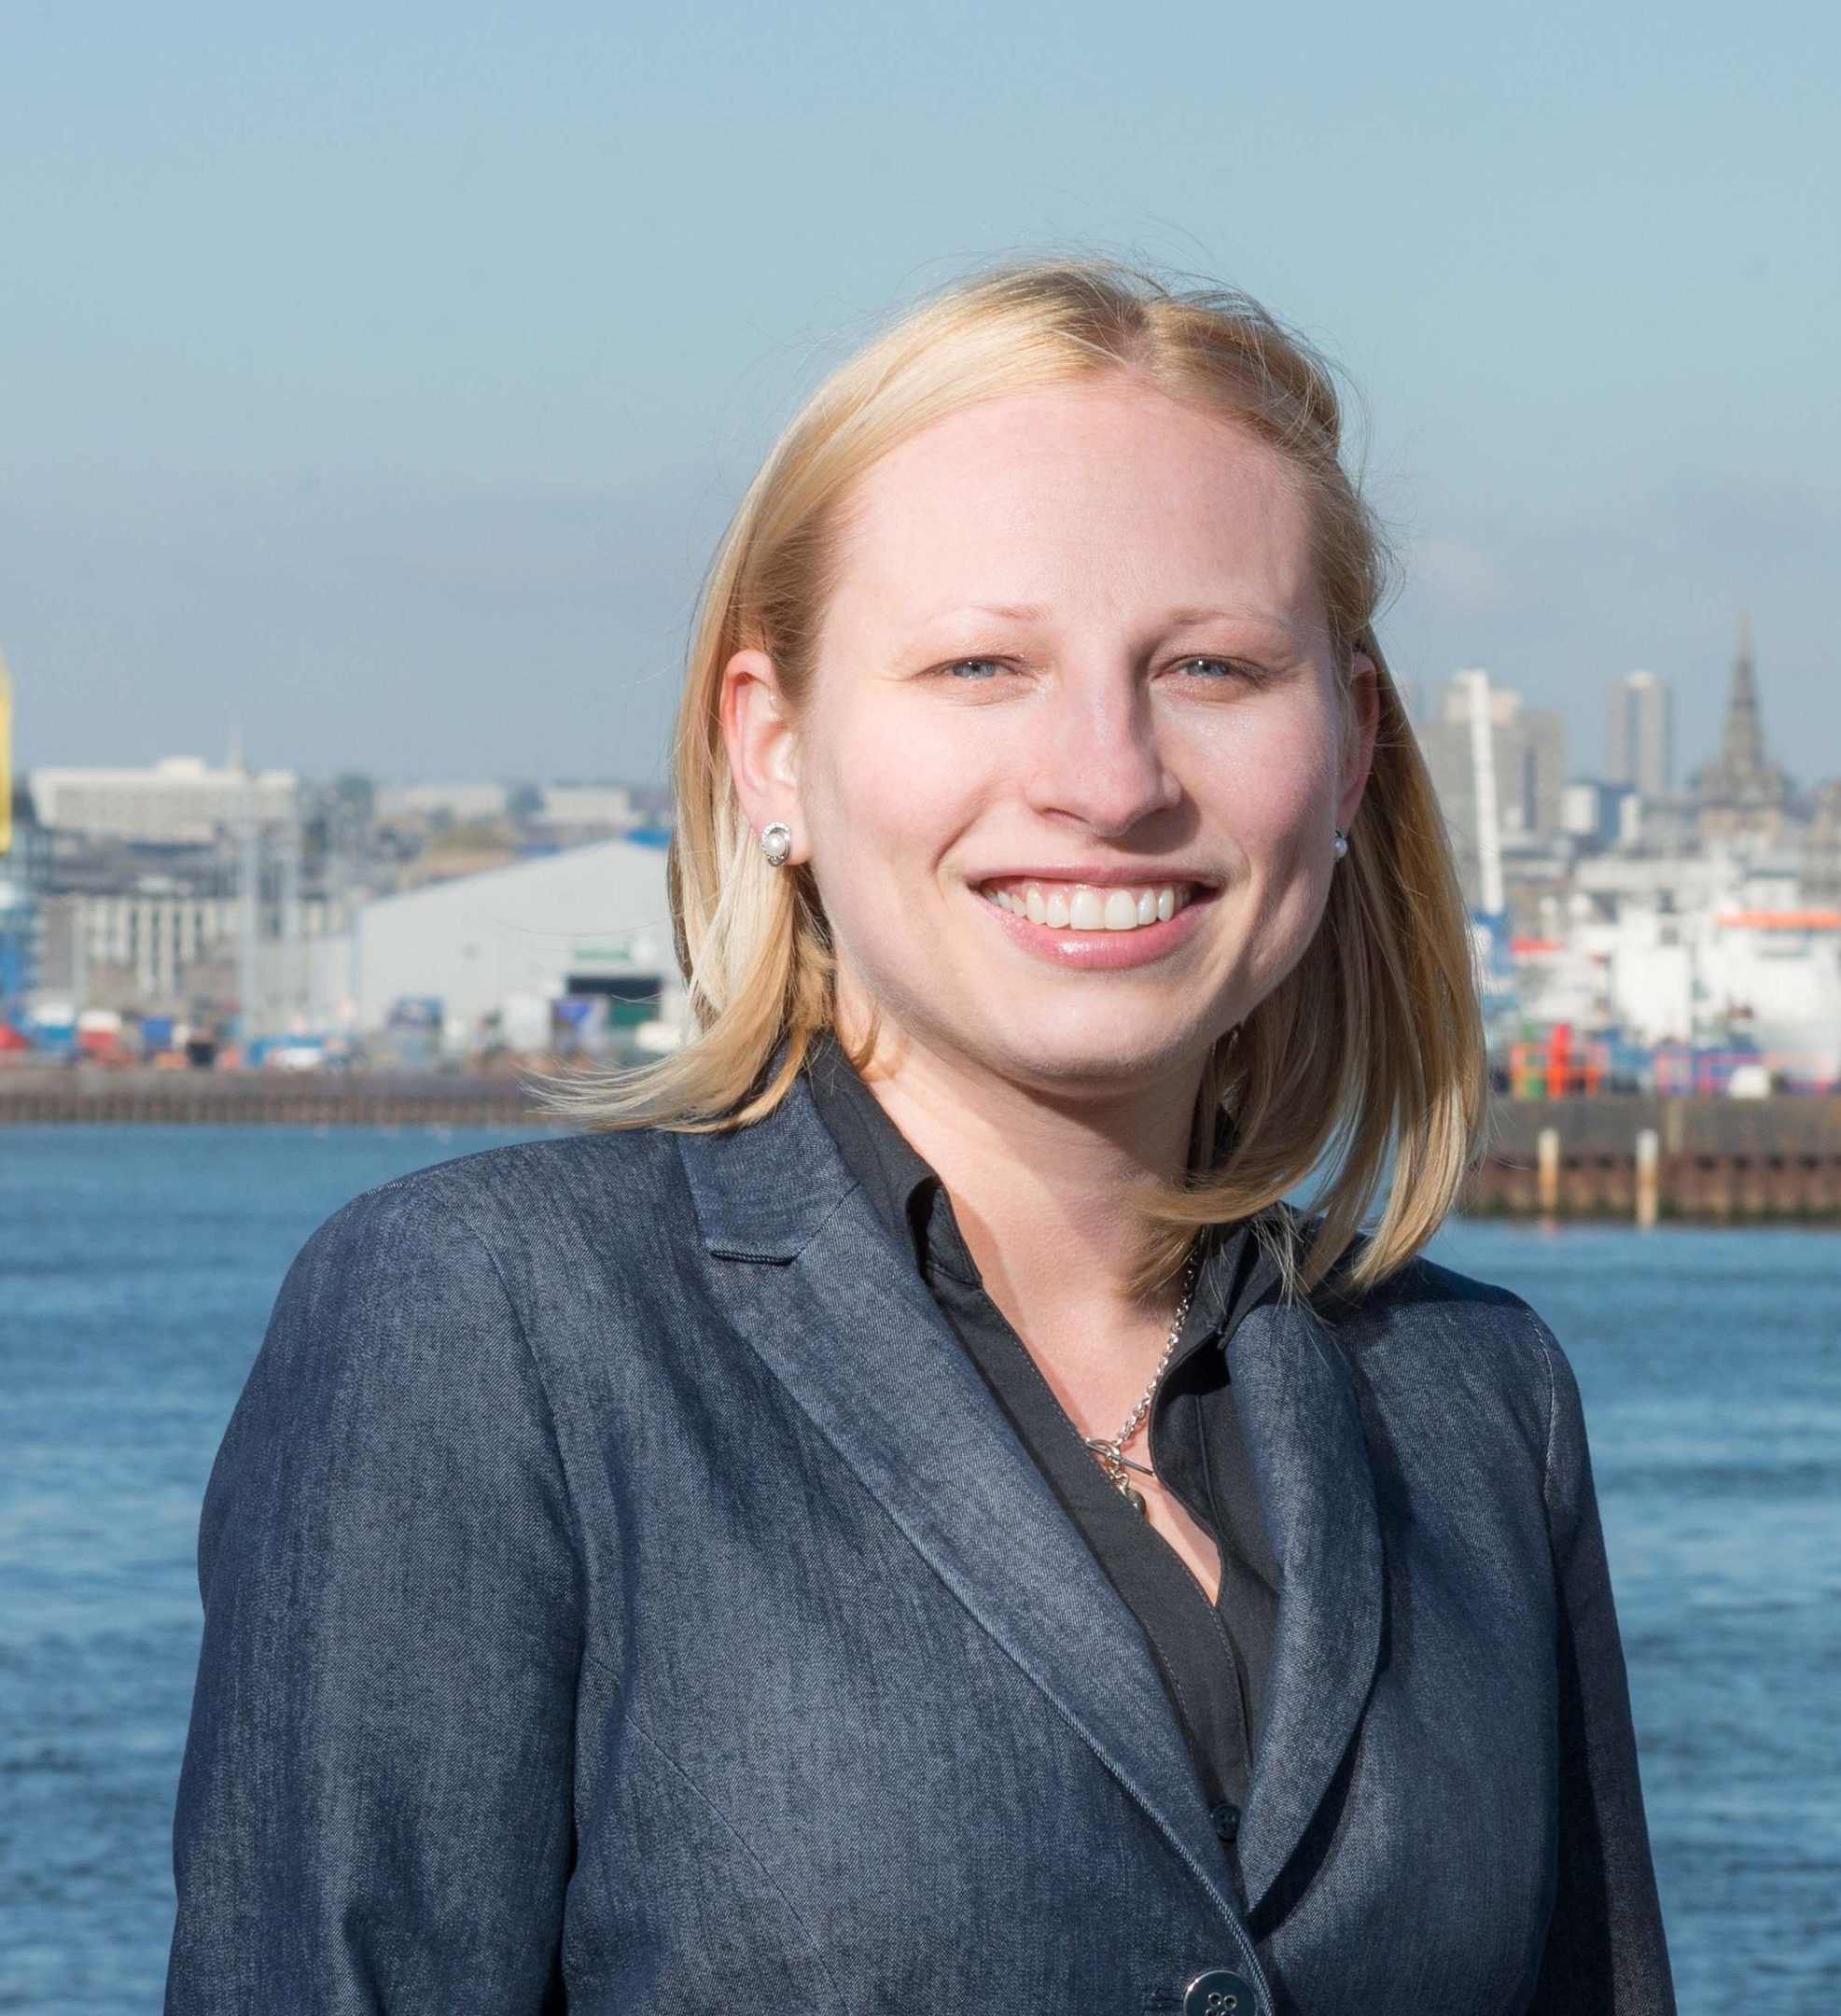 Aleksandra Tomaszek is chief operating officer of 1CSI, a subsea integrity consultancy. She is a member of the Project Management Institute and Institute of Directors.